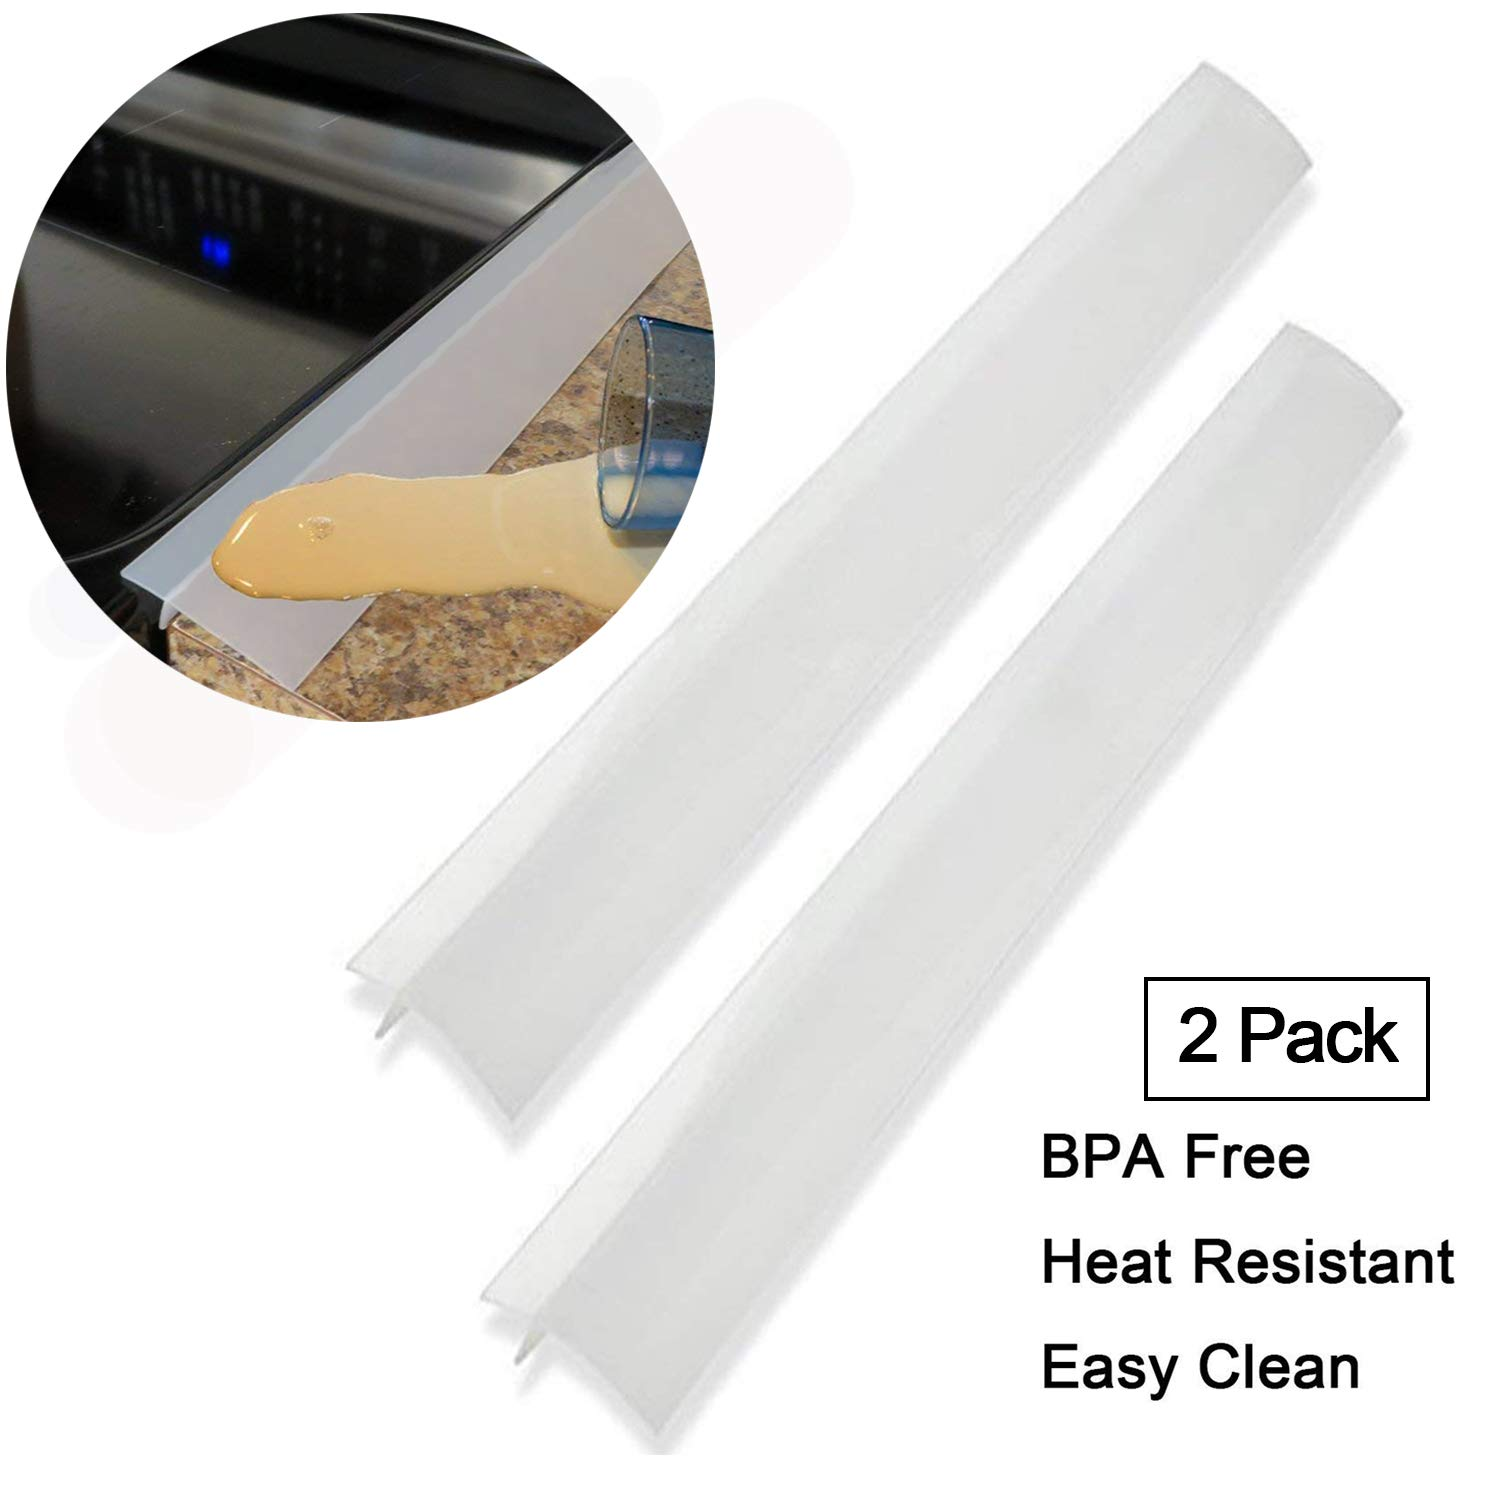 25 inches silicone stove counter gap cover Easy Clean Wide & Long Gap Filler Seals Spills Between Stoves kitchen counter Washer & Dryer for Oven Stovetop Washing Machines Silicone Space Fillers Clear